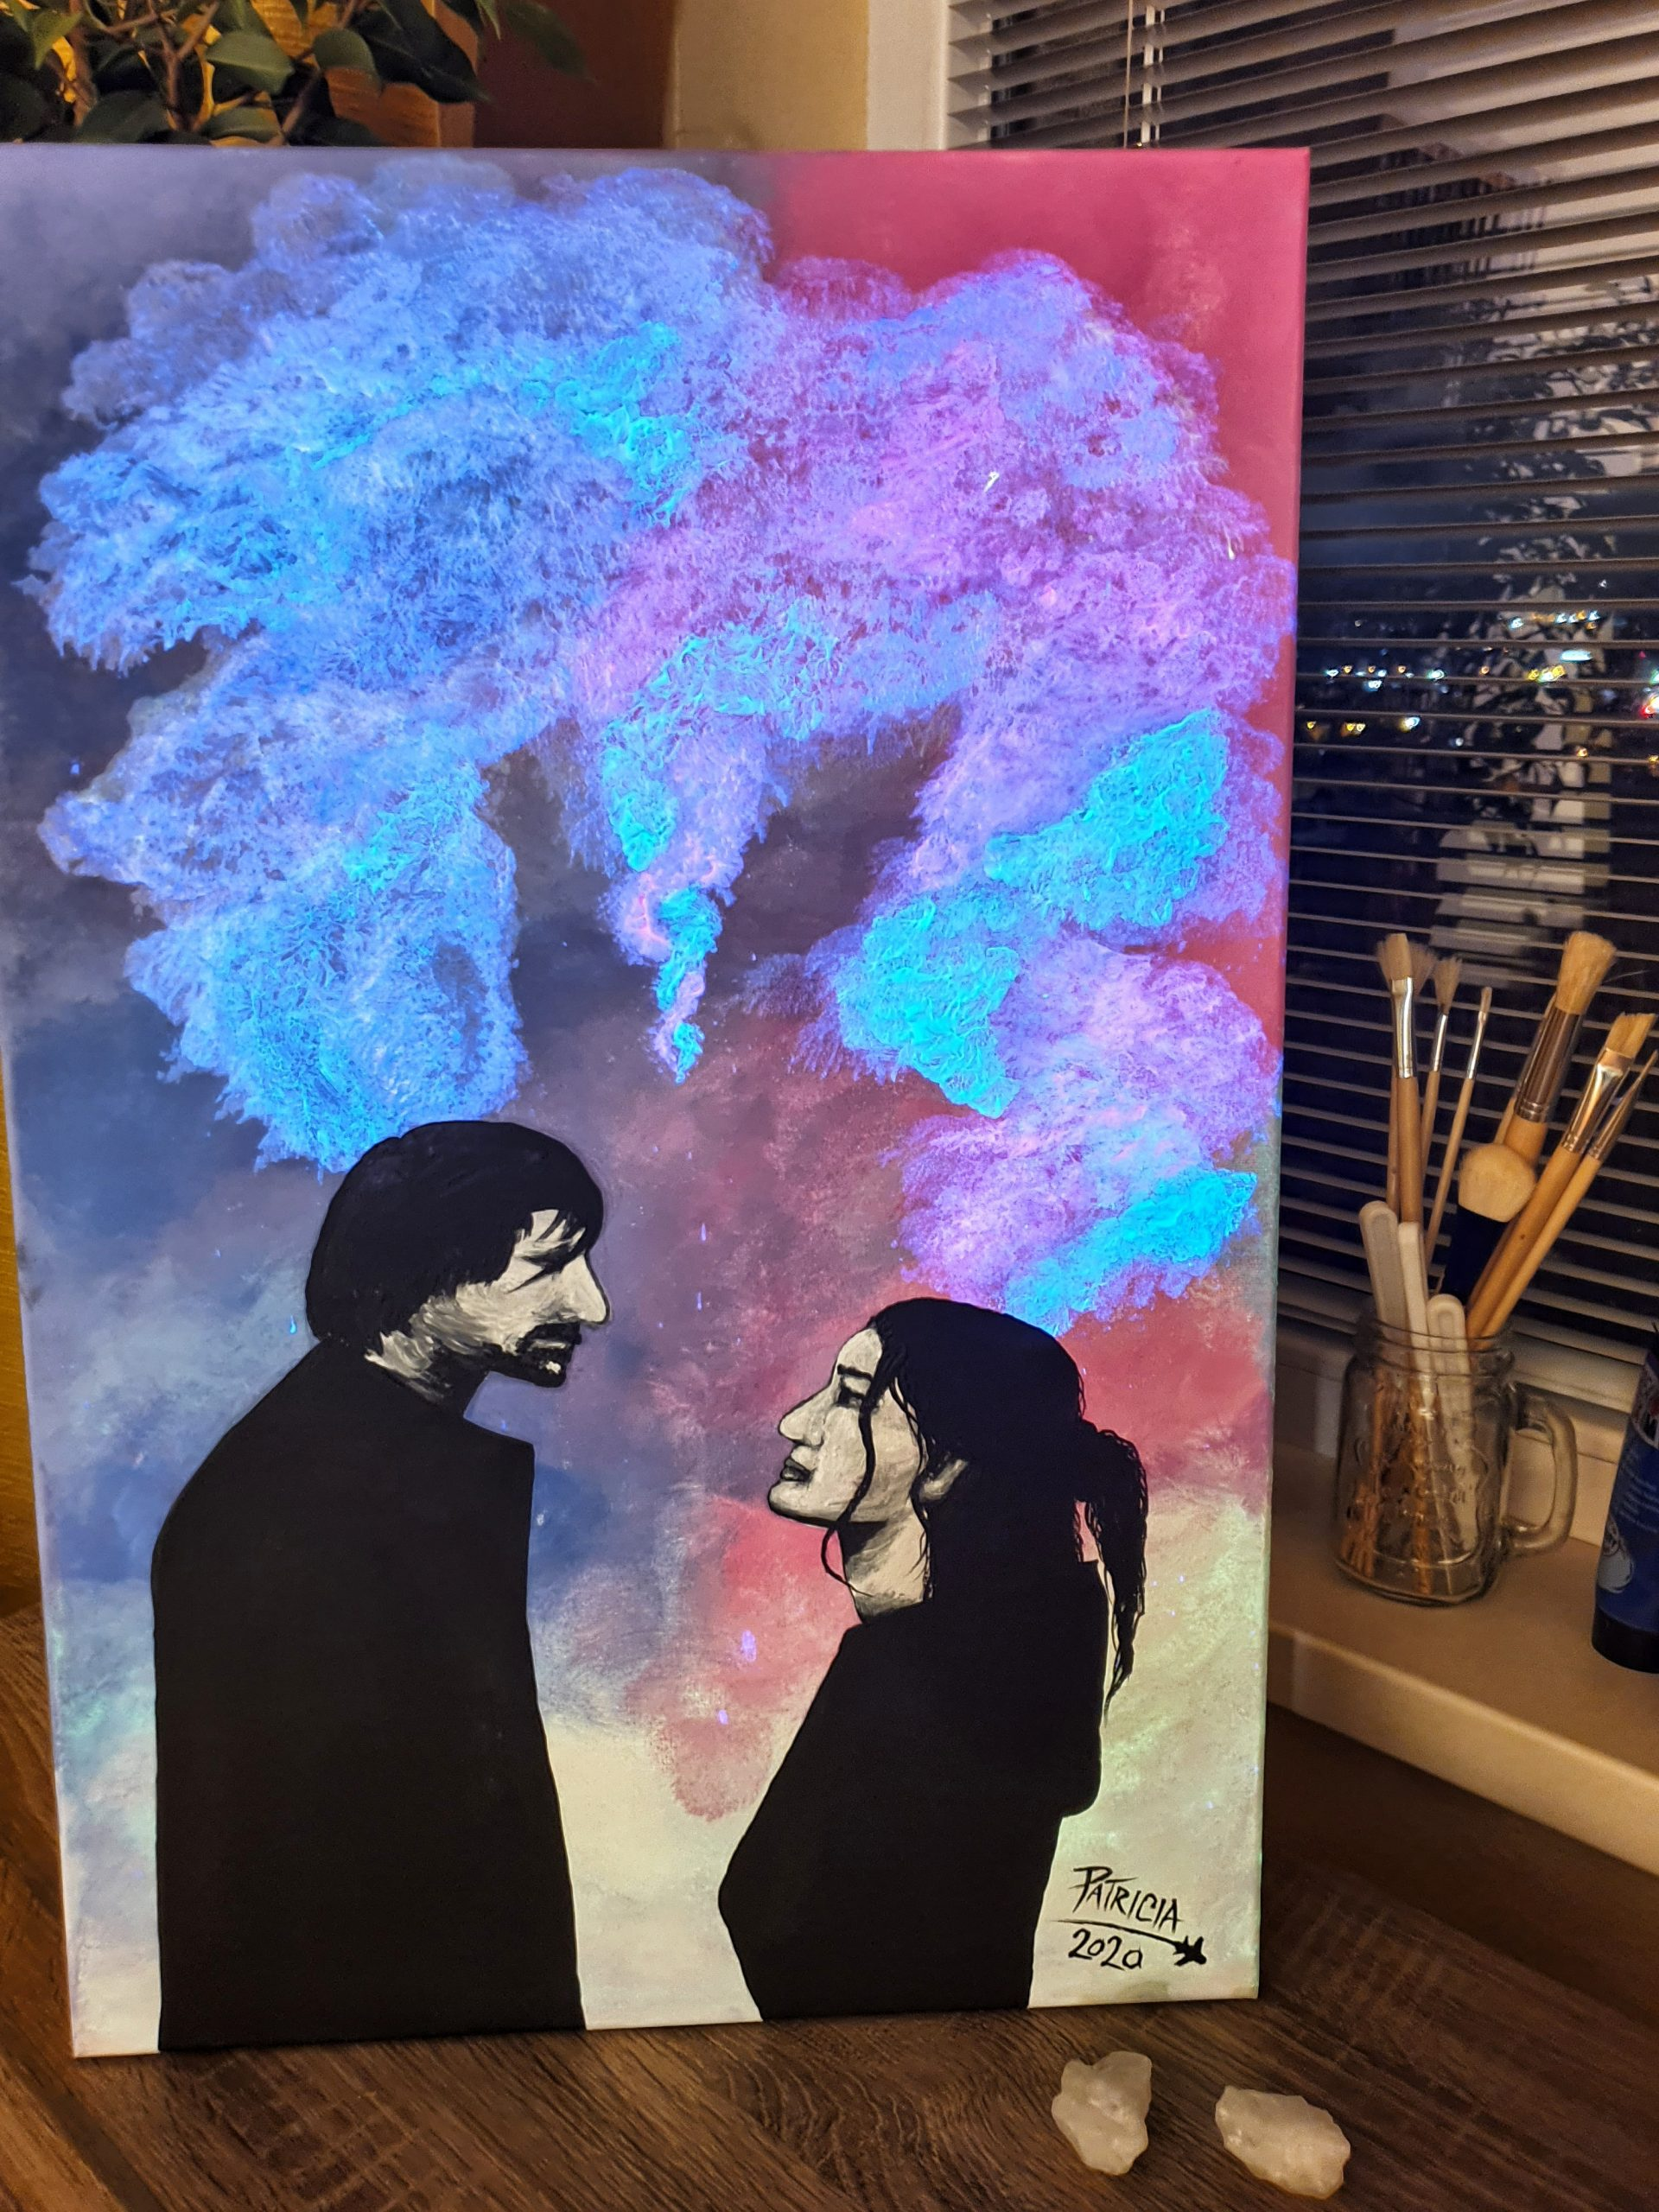 Patricia Art glowing painting